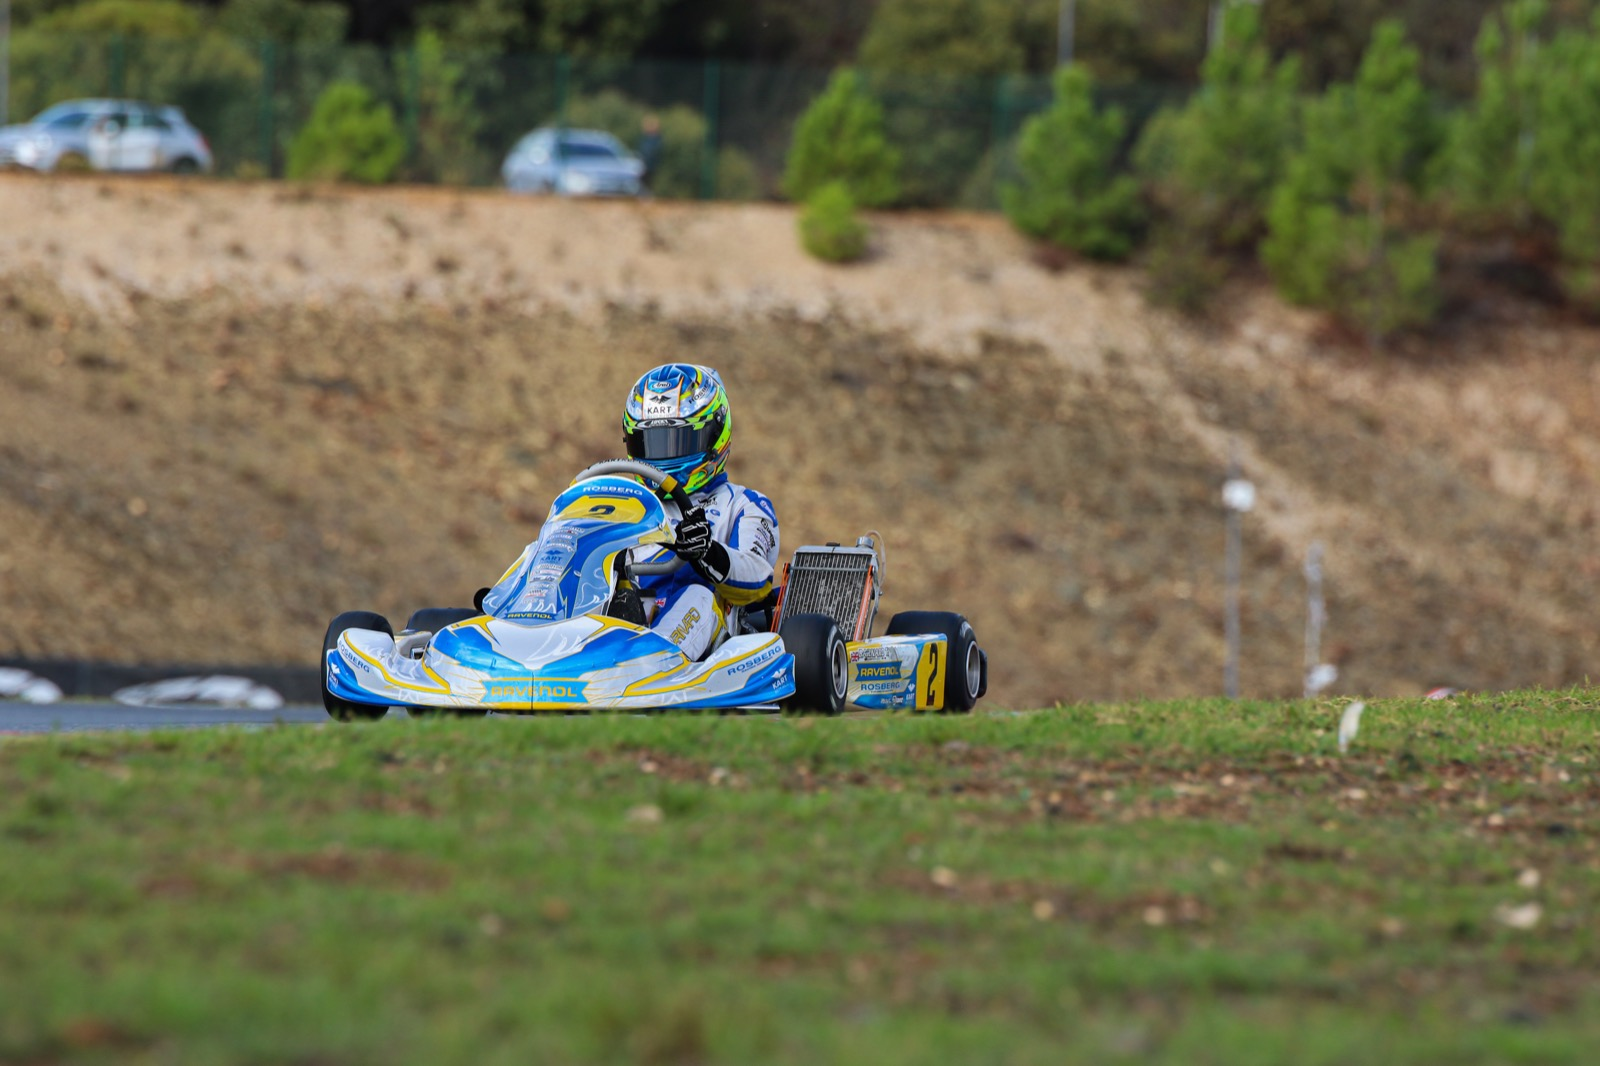 FIA Karting World Championship, Portimao - Barnard and Ho in advantage